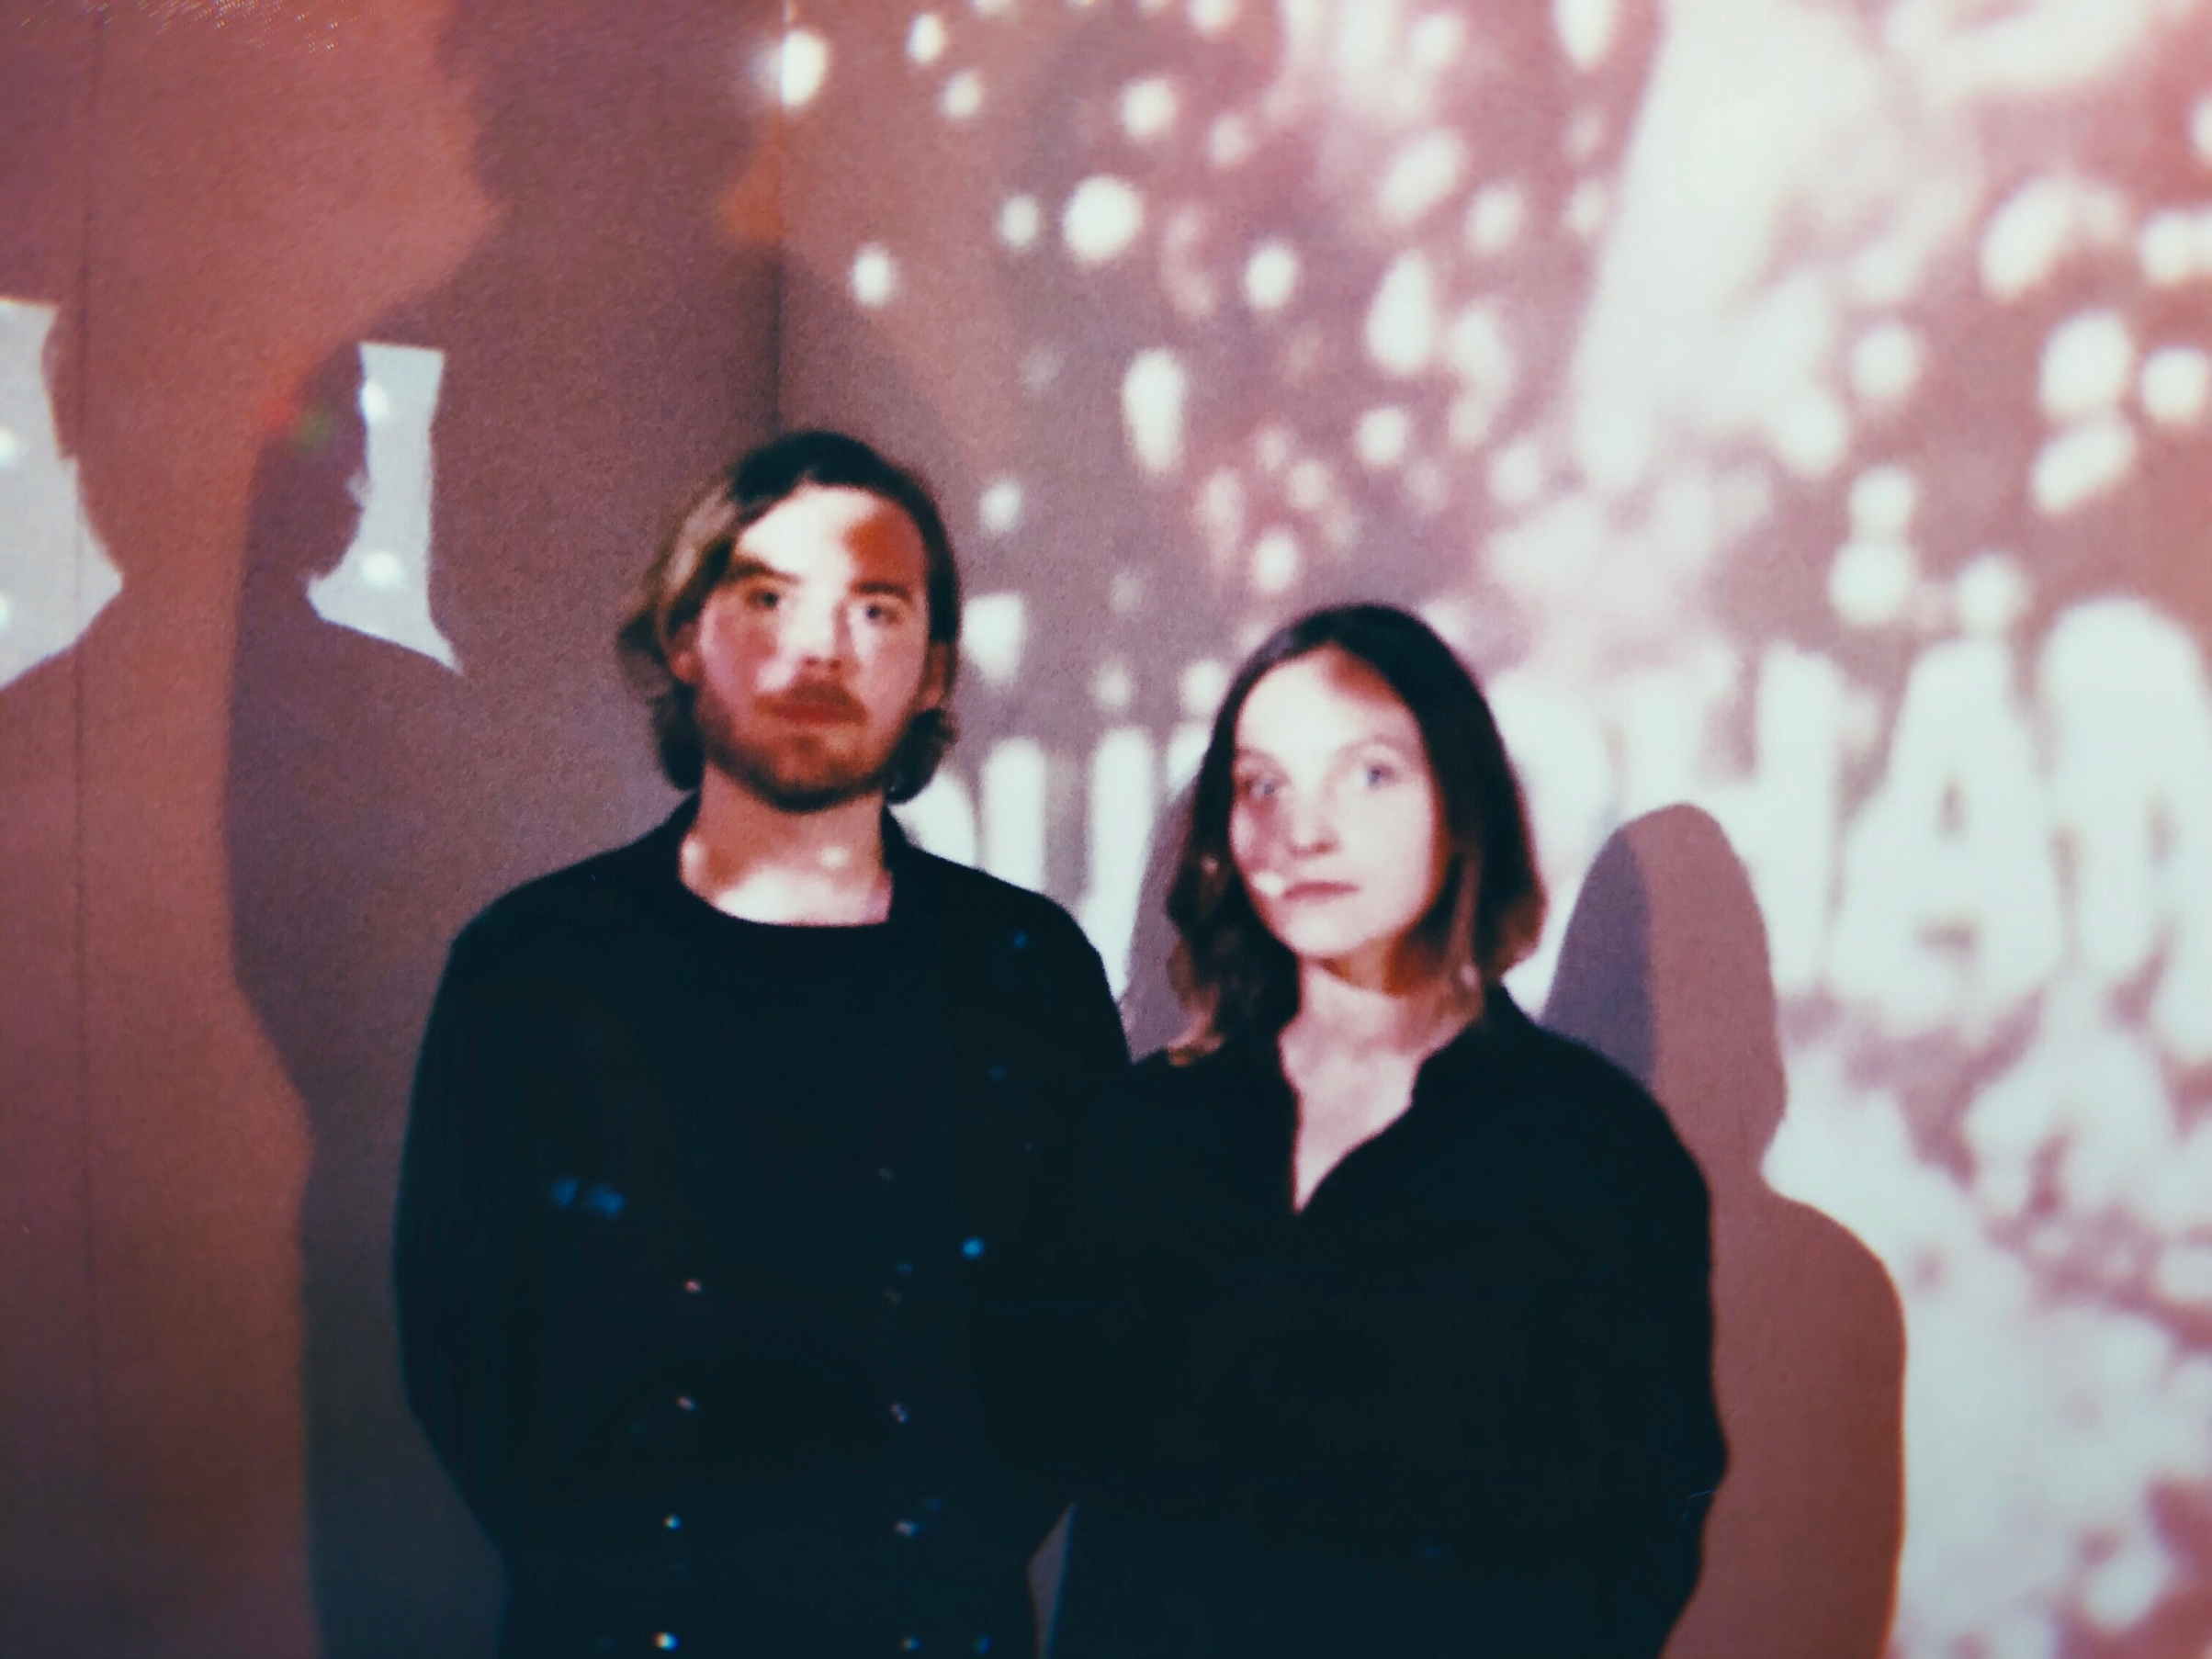 CANADA'S FUNERAL LAKES ARE BACK WITH 'REDEEMER' EP